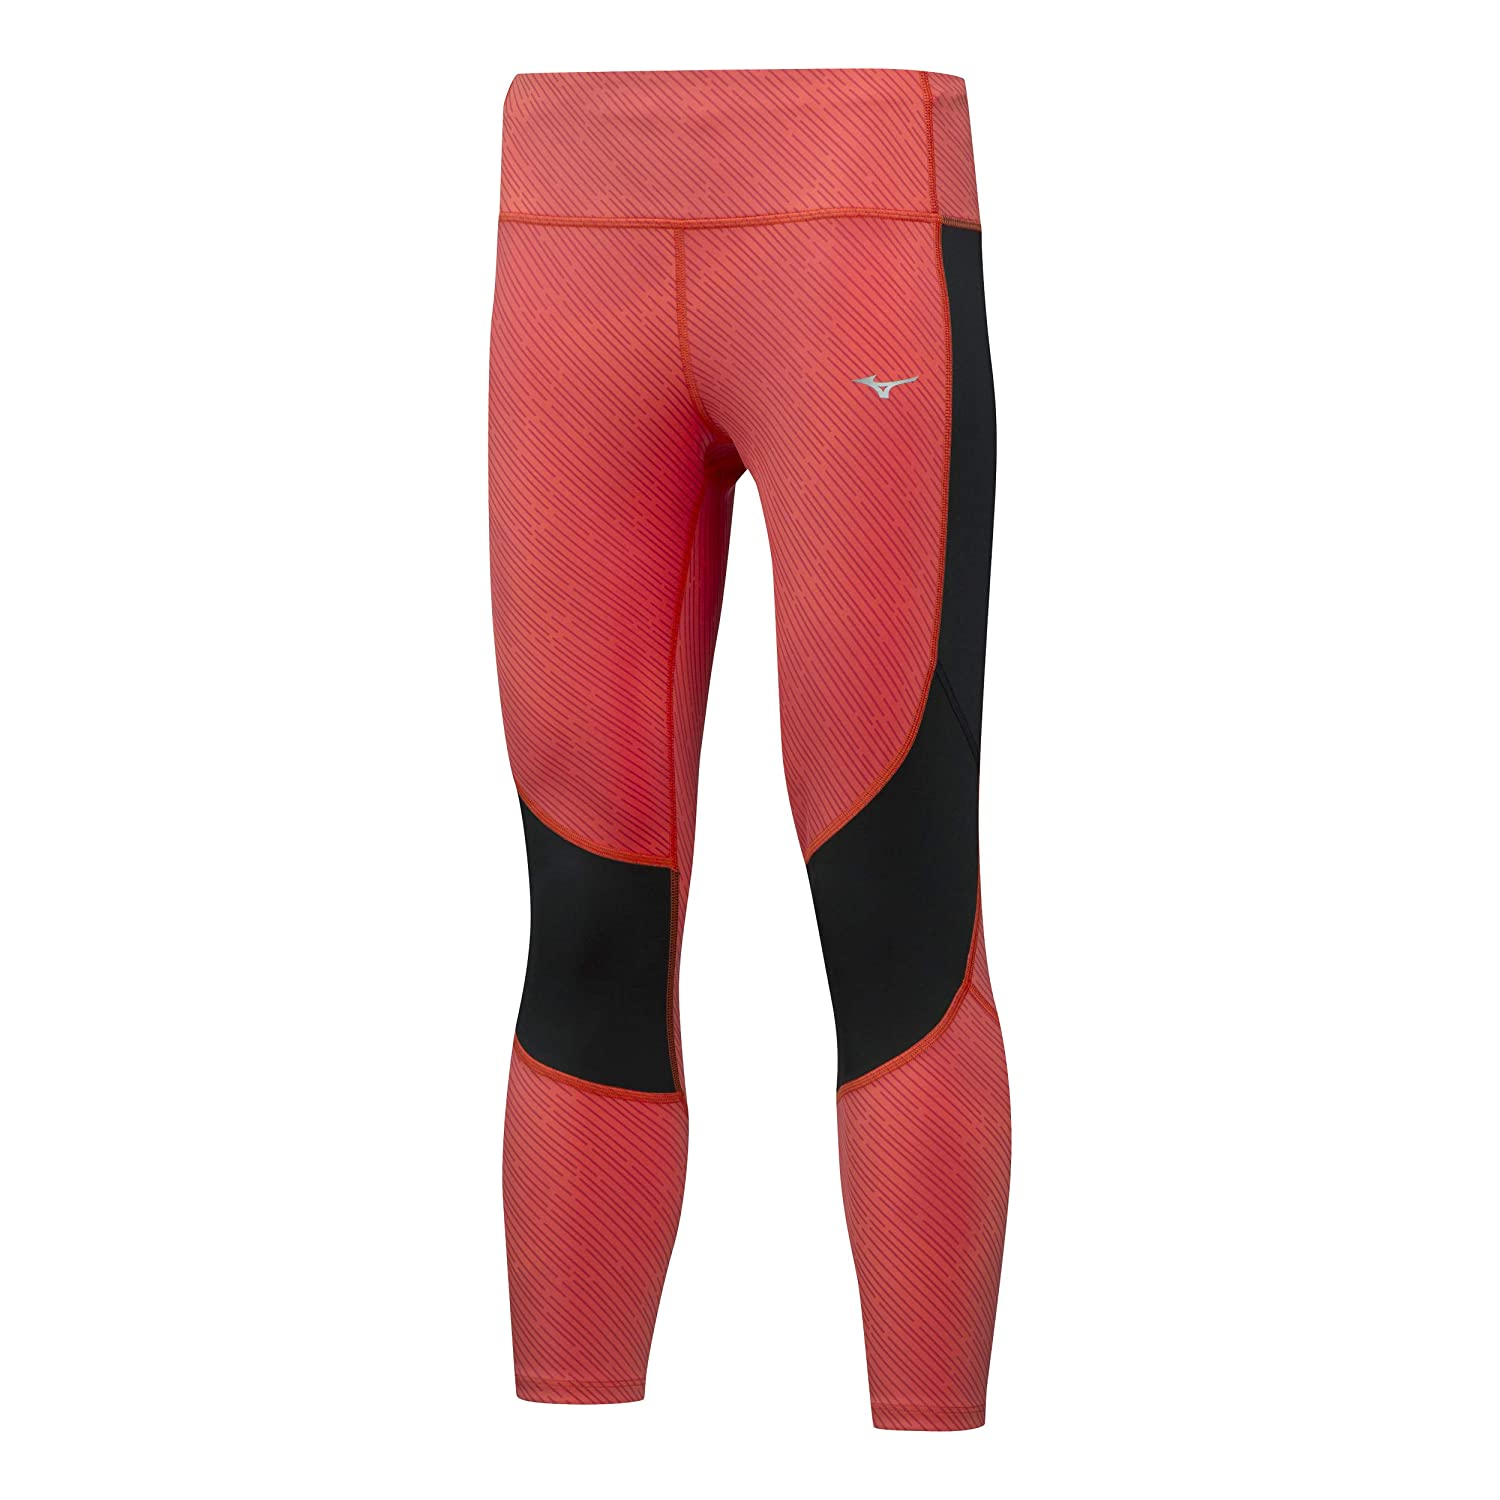 Mizuno Damen Impulse 3/4 Printed Tight Laufbekleidung Tight Orange - Schwarz S